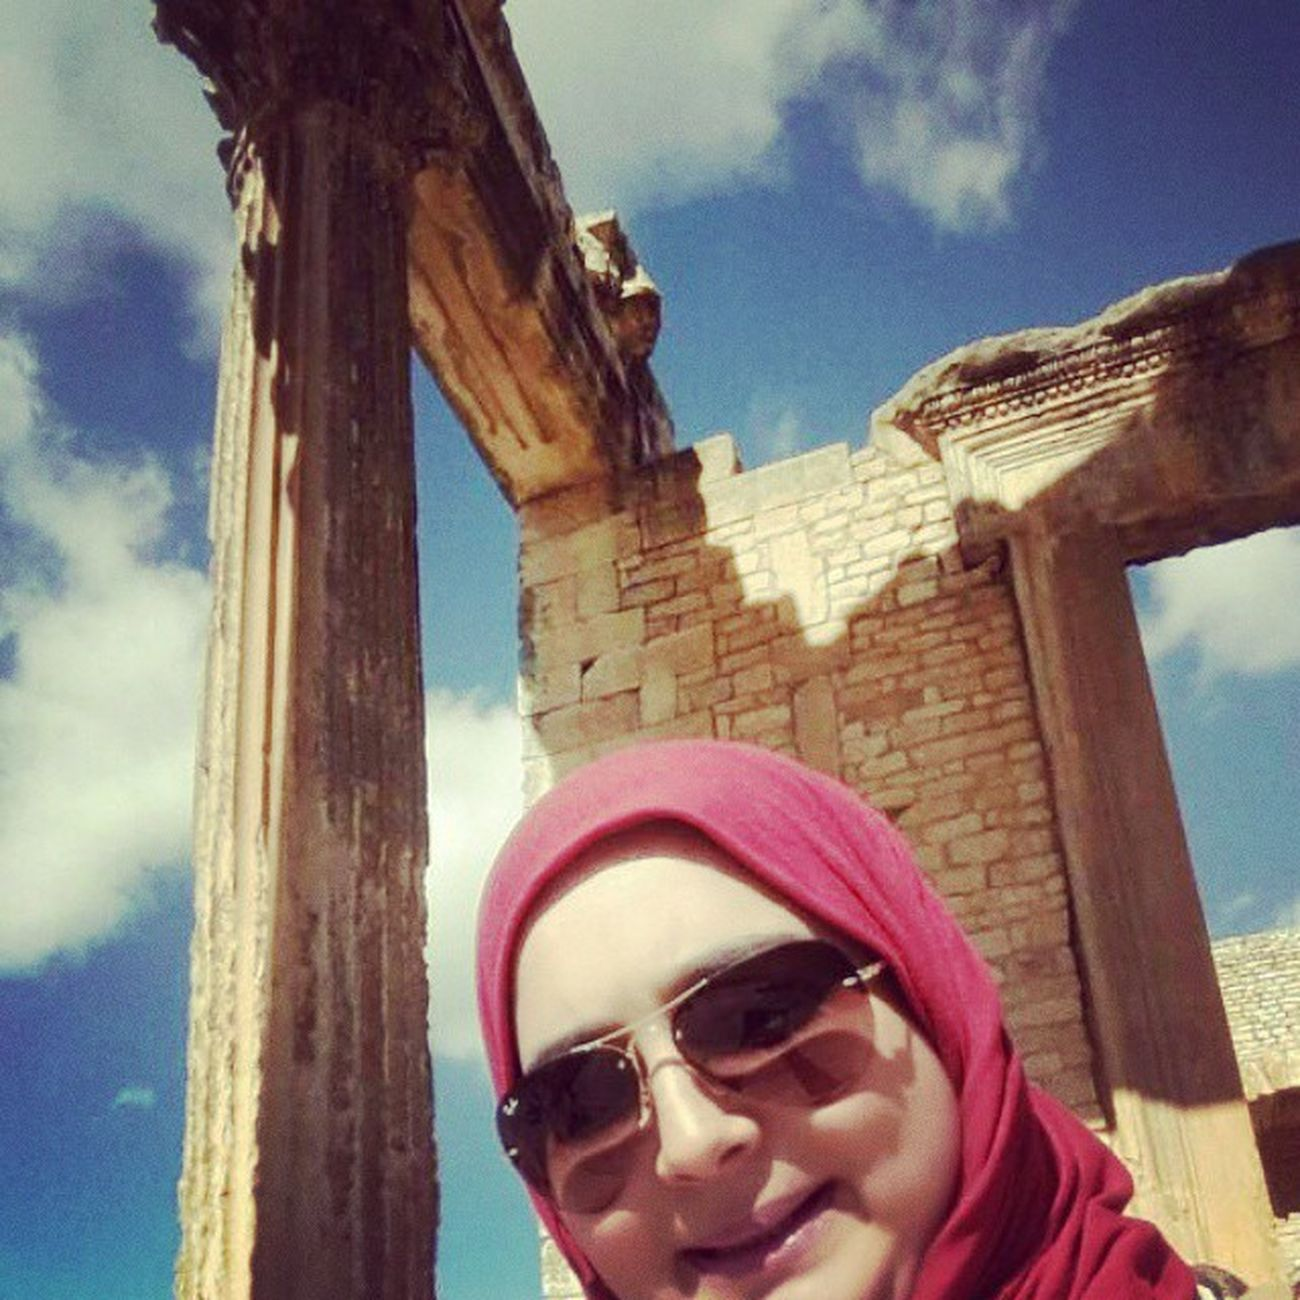 Samedi With Lovely Happy Love Dougga Tunis Tunisia Theater Traditional Tradition Amazing Arabic Architecture Igertunisia Instalove Instahappy Instalove InstaTunisia February Luxury Myworld Mylife Wekkend Beautiful nature nostress تاريخ طبيعة تونس